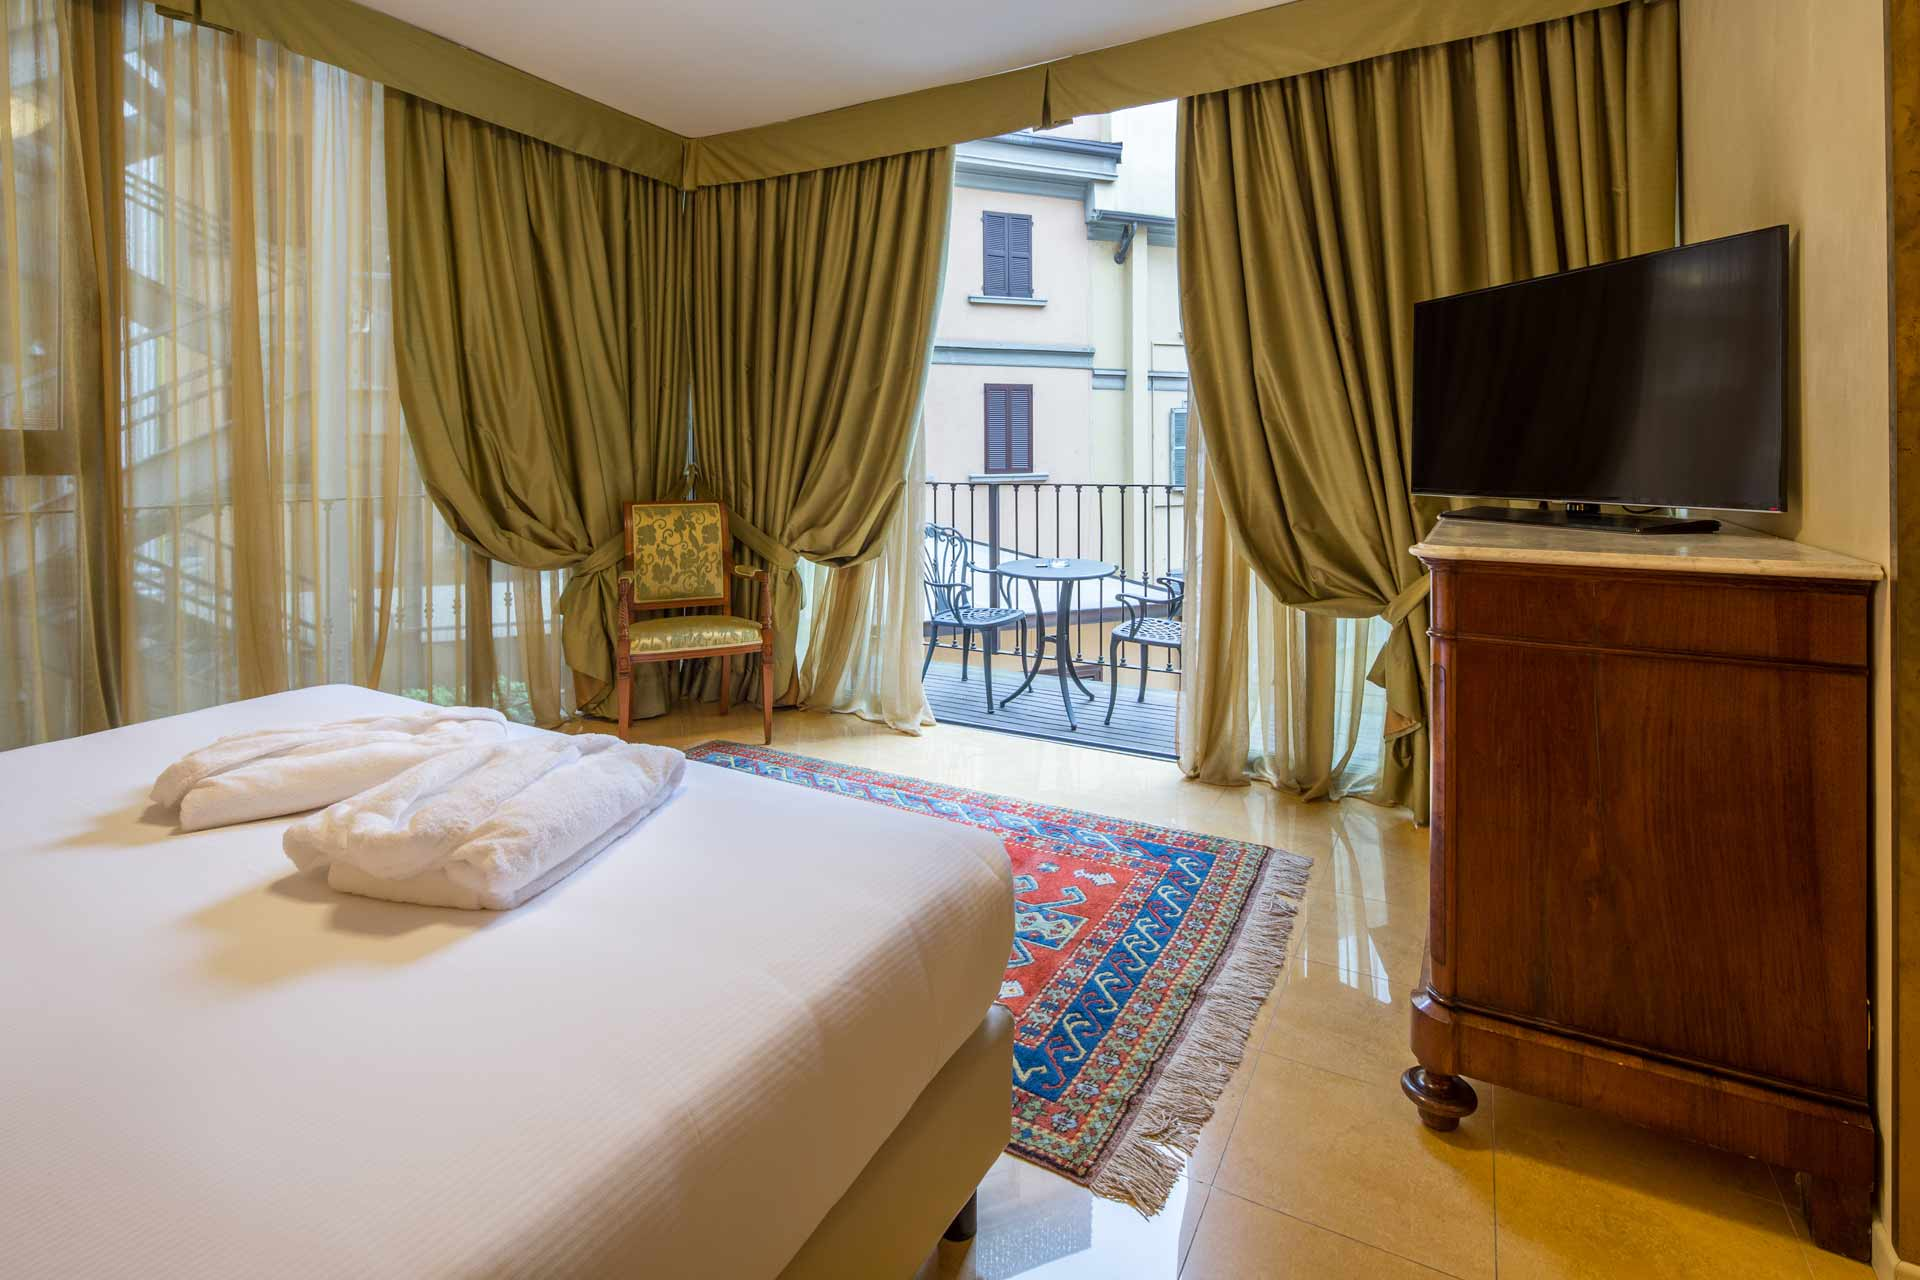 Camere family hotel galles best western plus milano 4 stelle - Hotel con camere a tema milano ...